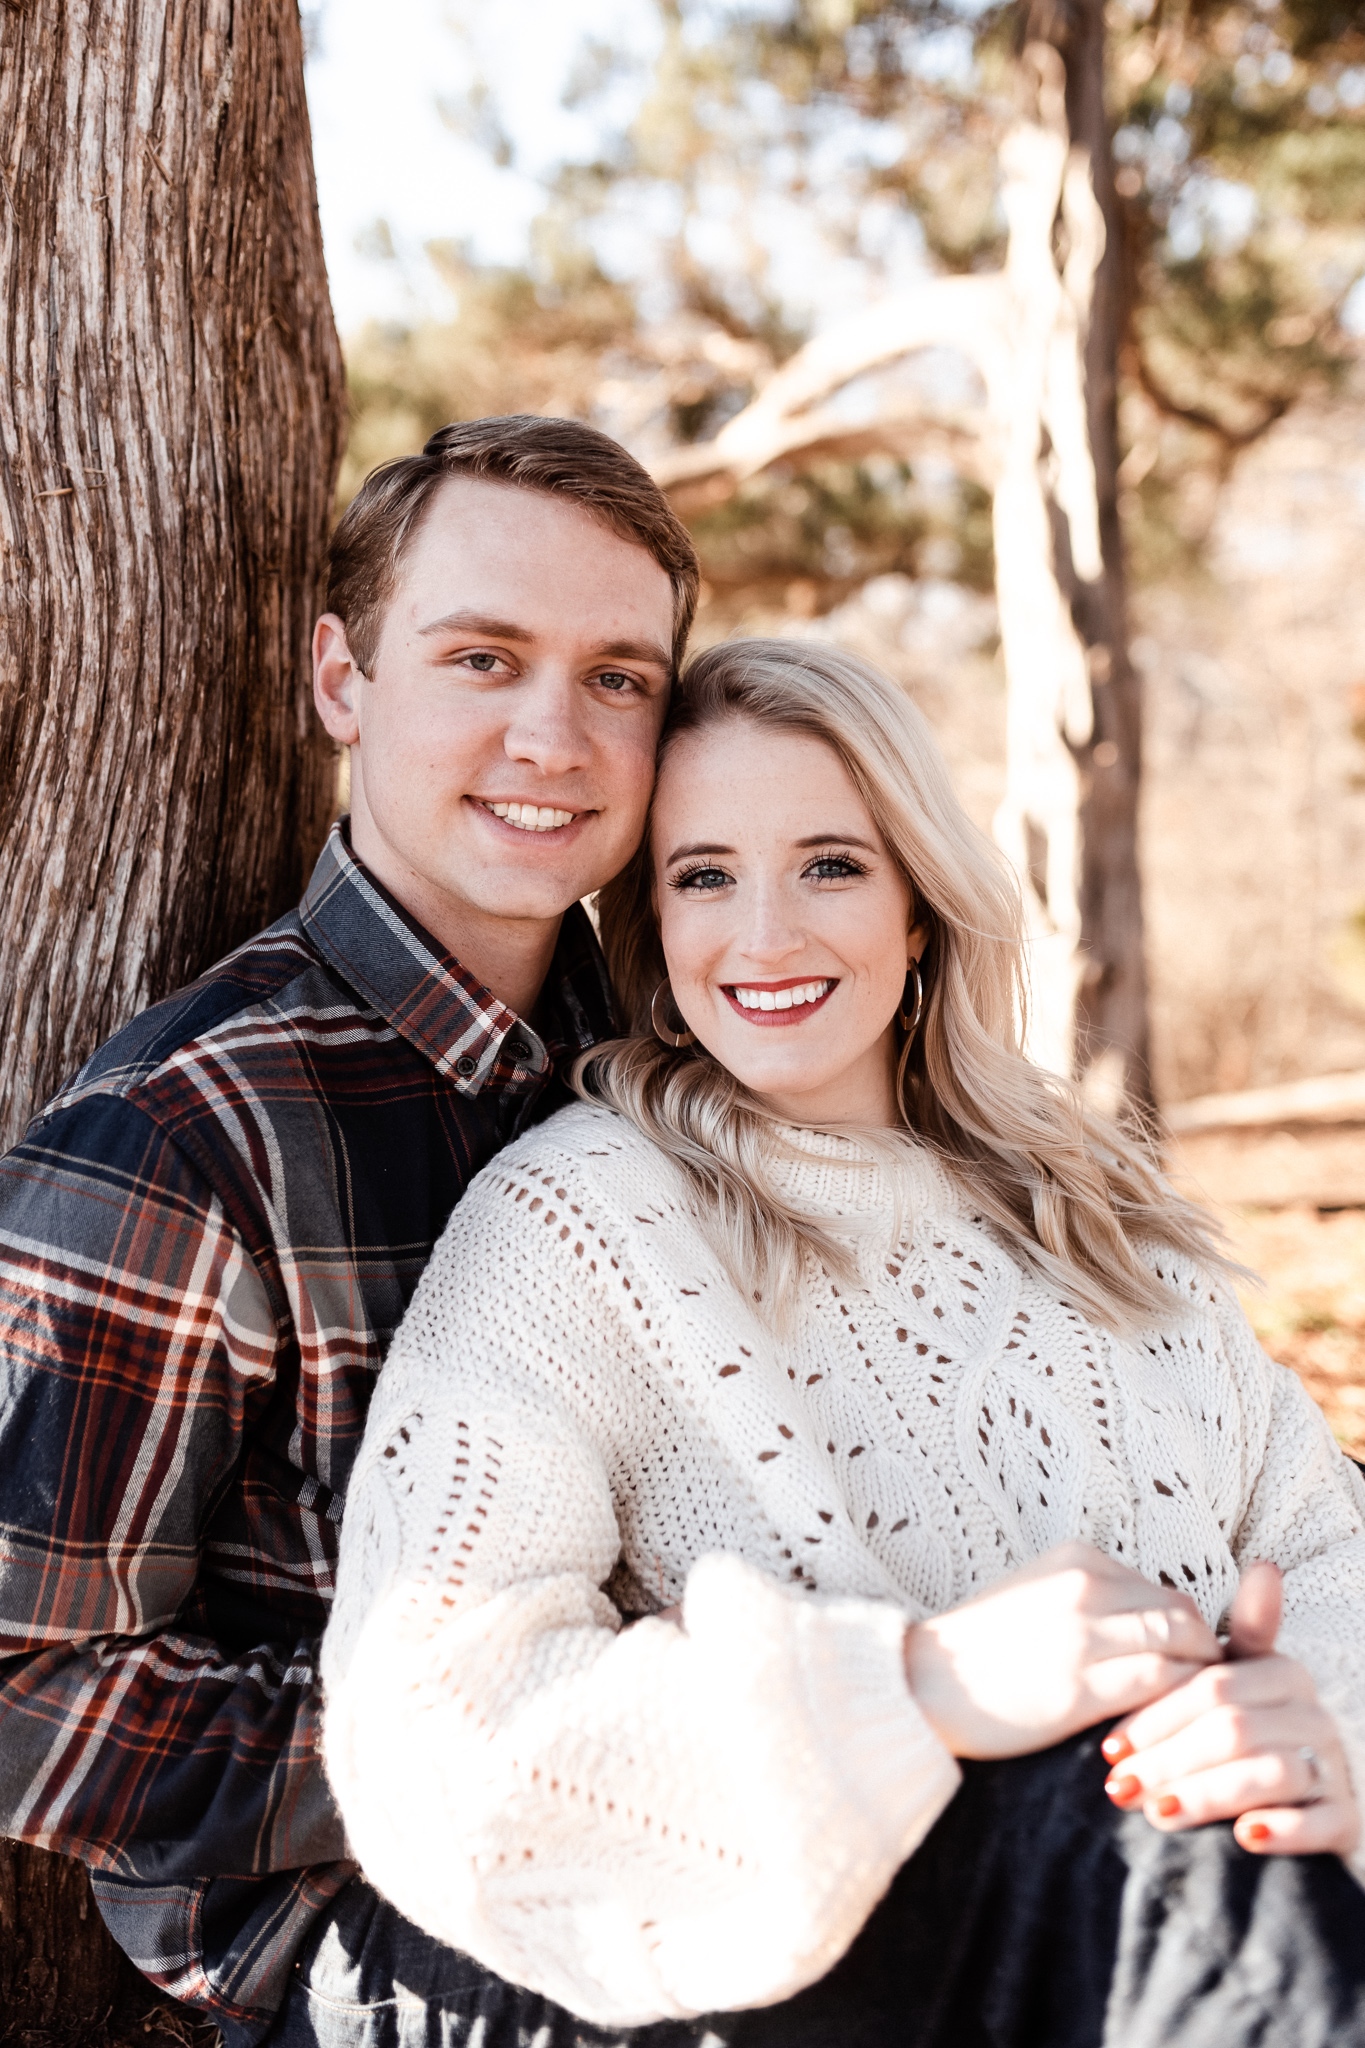 Foster + Alexa | Spring Garden Engagements | Oklahoma Wedding Photographer-23.jpg